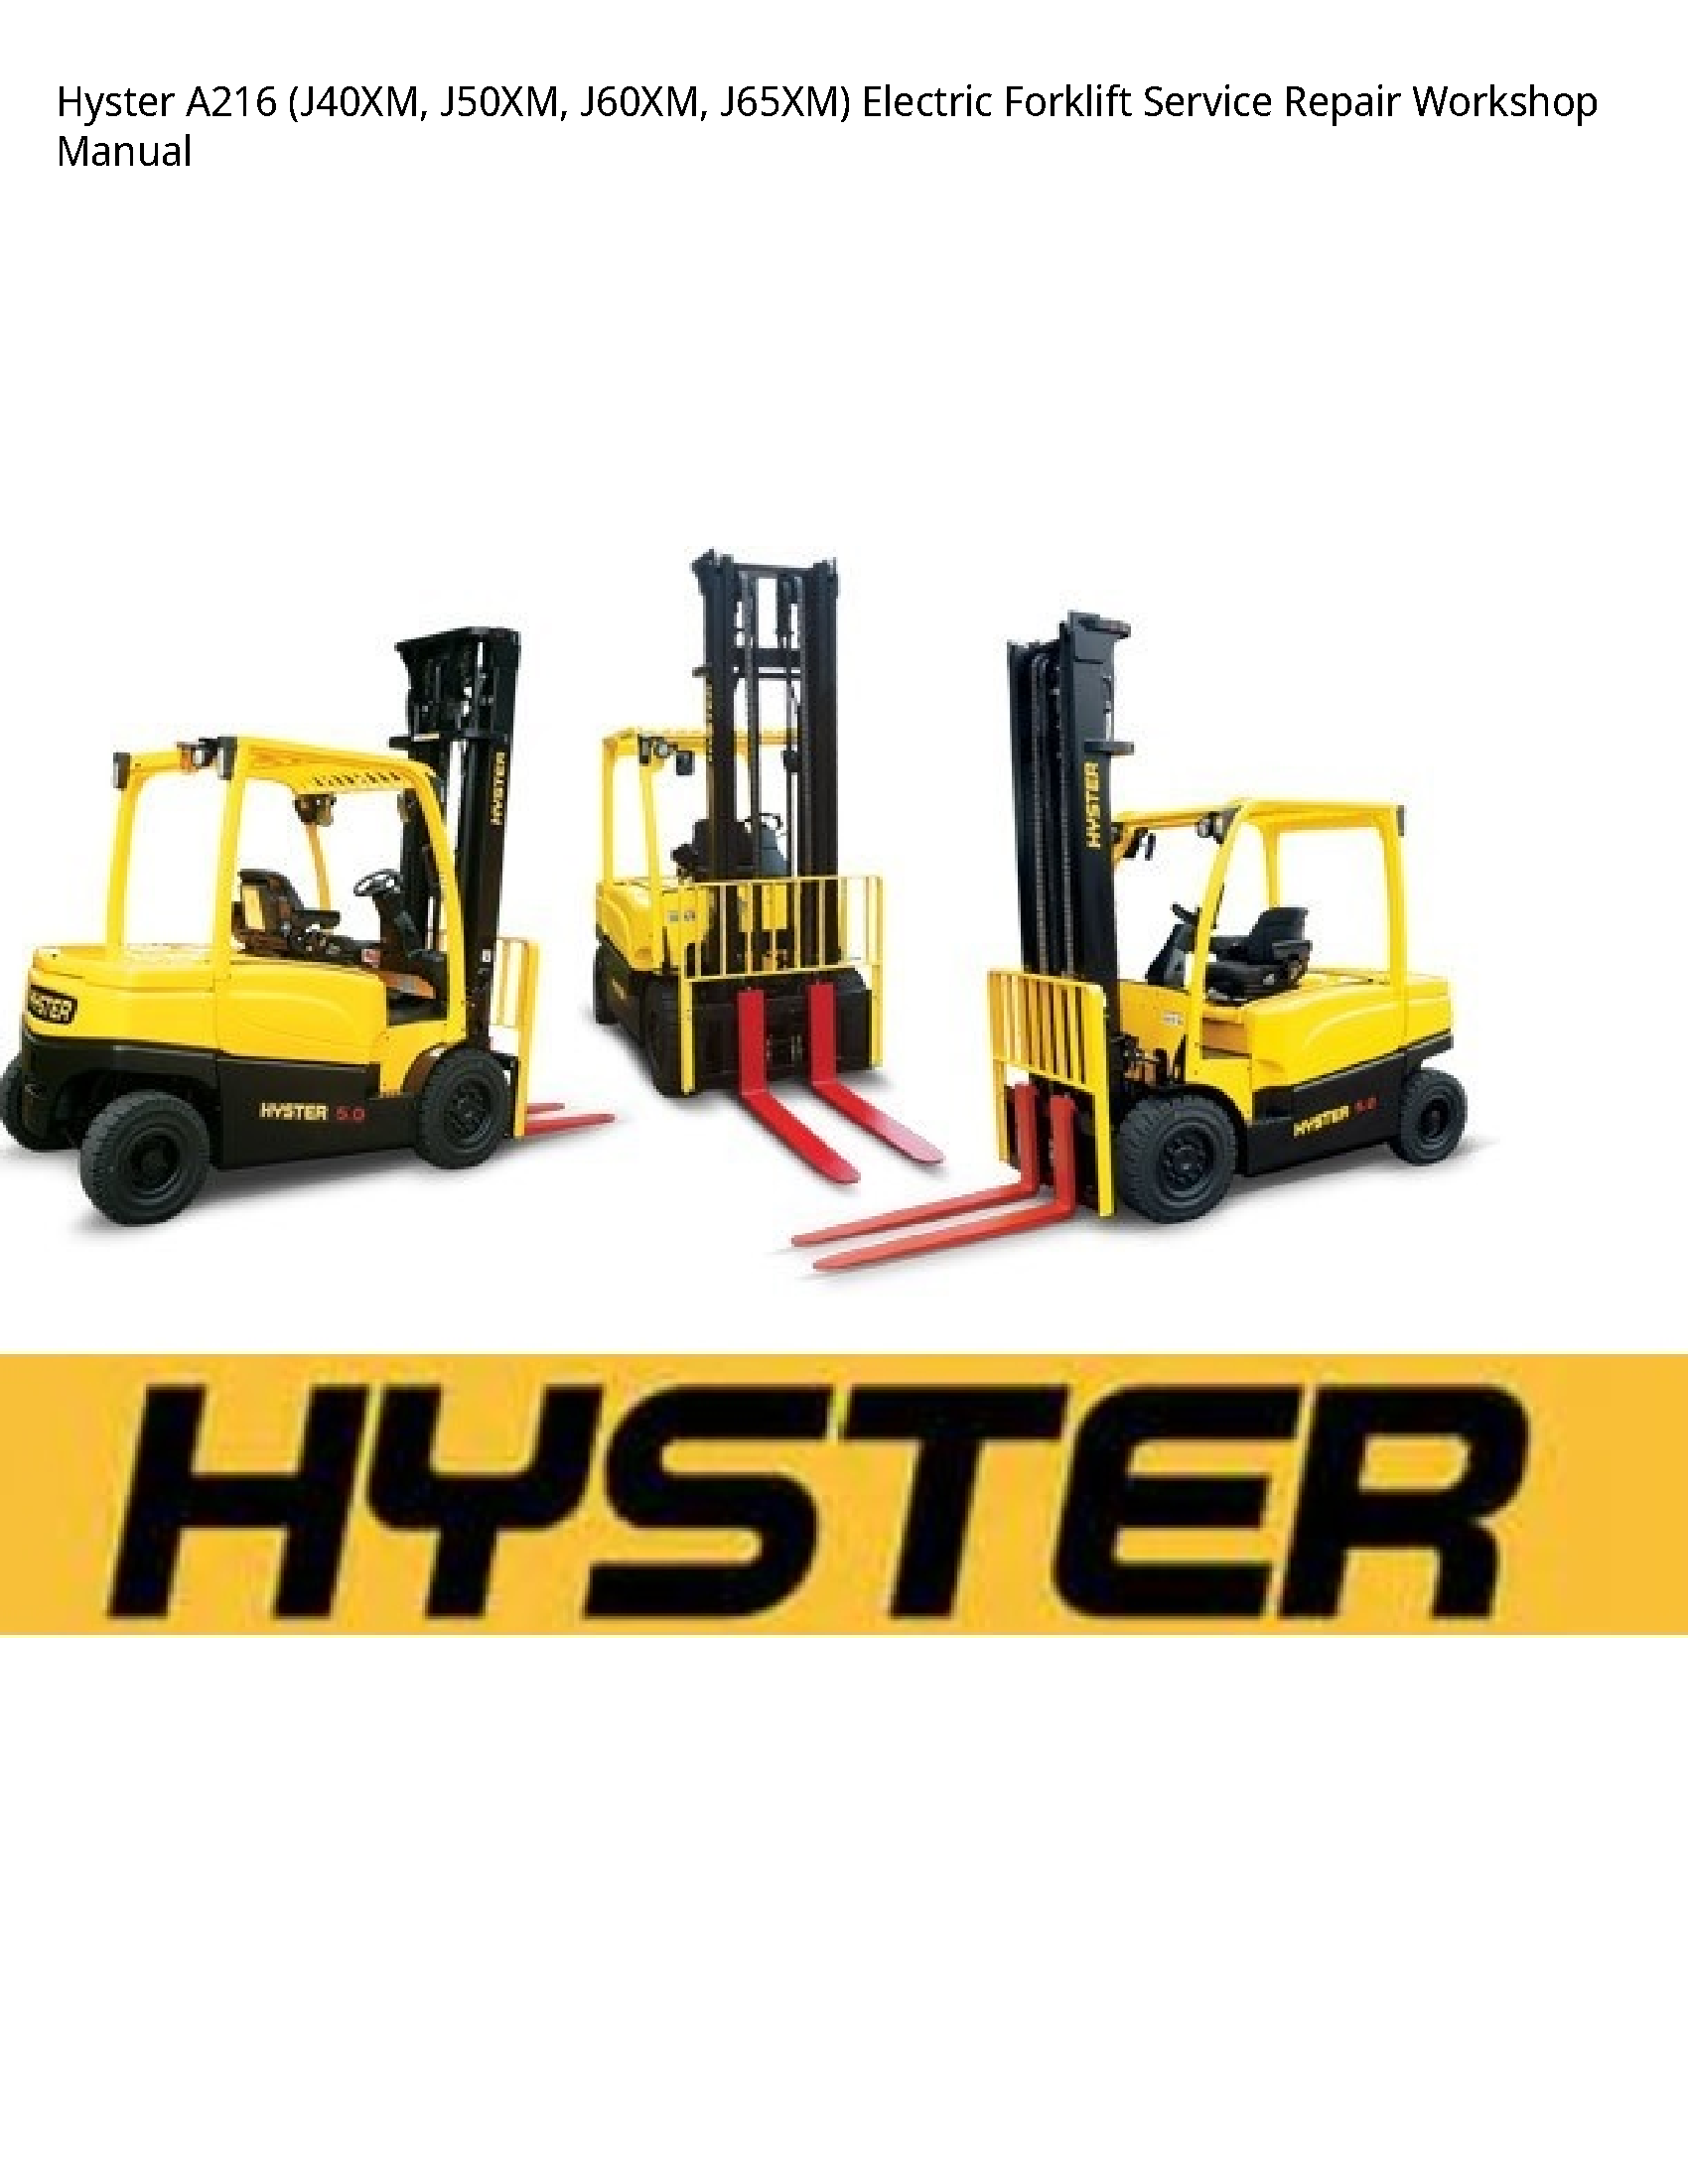 Hyster A216 Electric Forklift manual